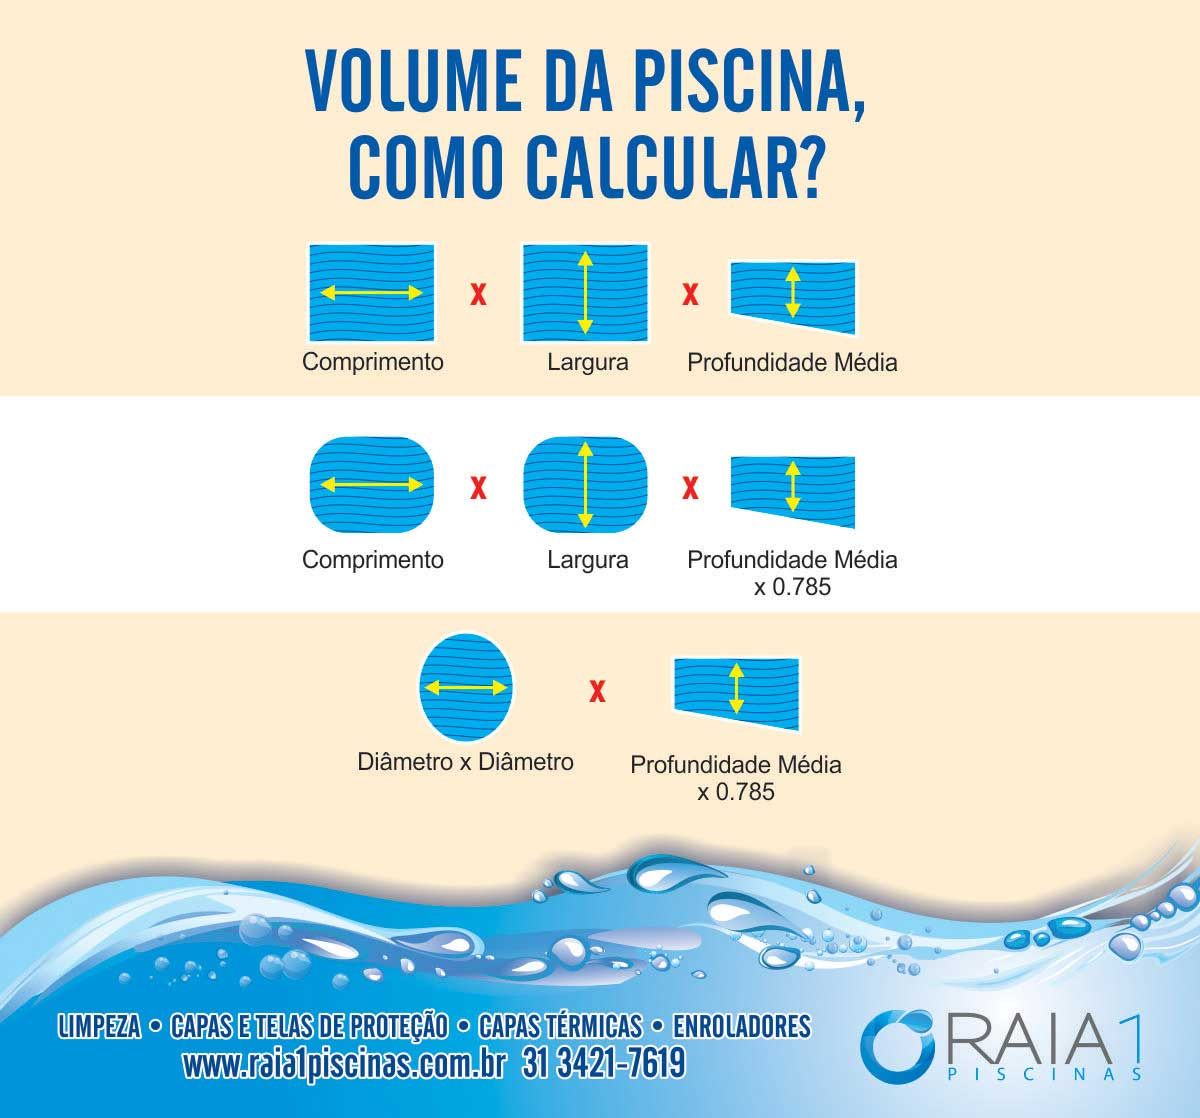 Volume da piscina como calcular raia1 piscinas em bh mg for Calculo estructural de una piscina